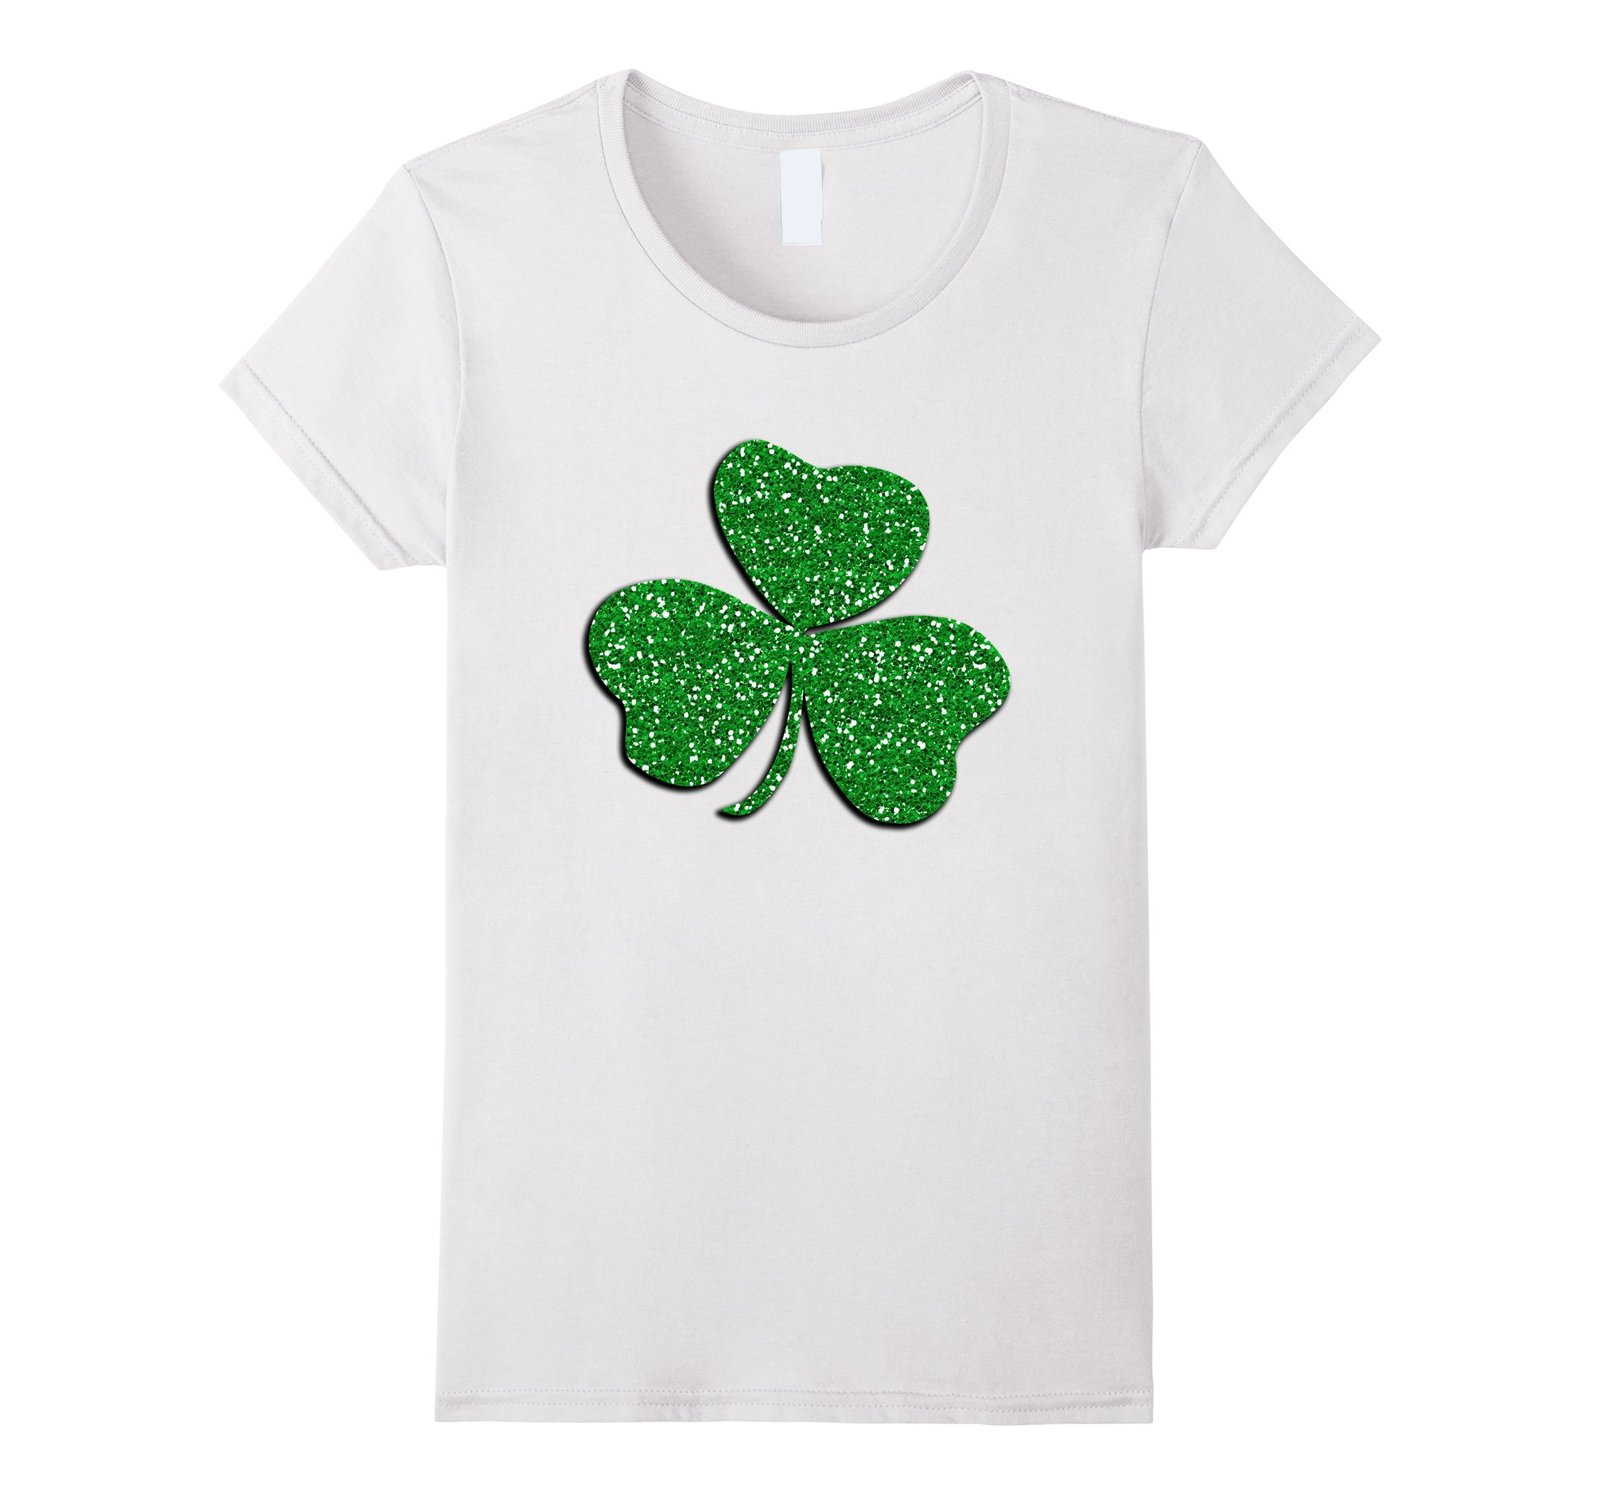 New Tee St Patricks Day Shirt Clothes for and 50 similar items